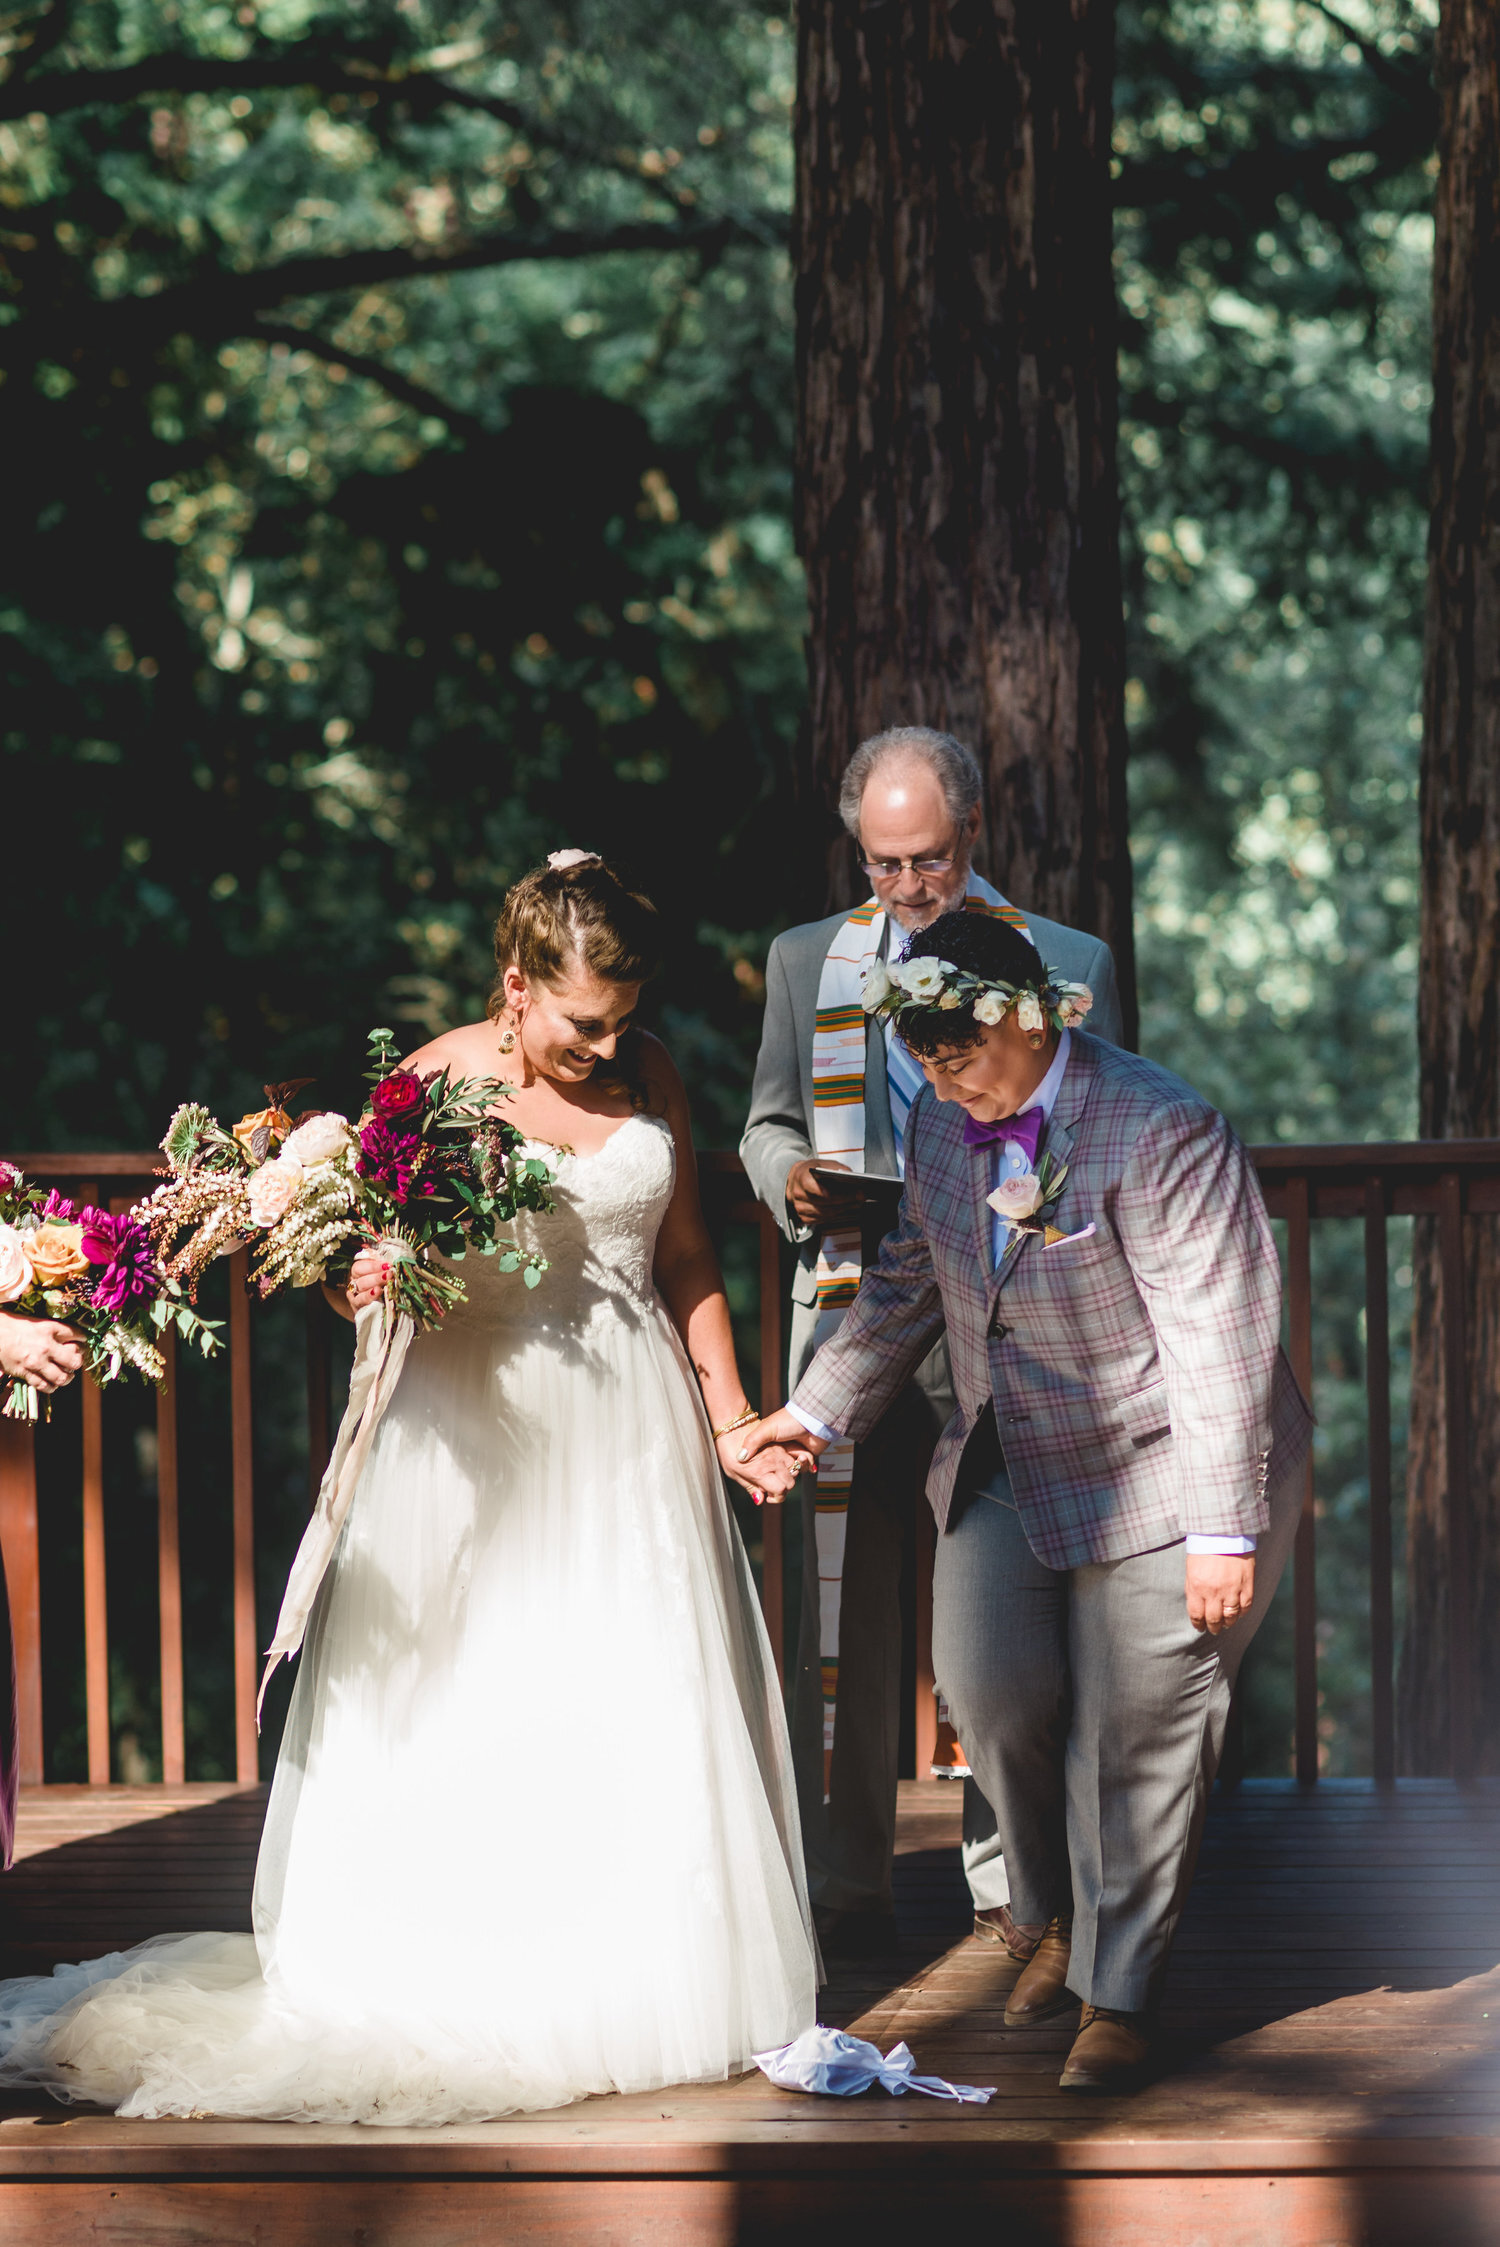 roz and carrie smashing the glass to reflect Carrie's jewish heritage at wedding ceremony in redwoods California